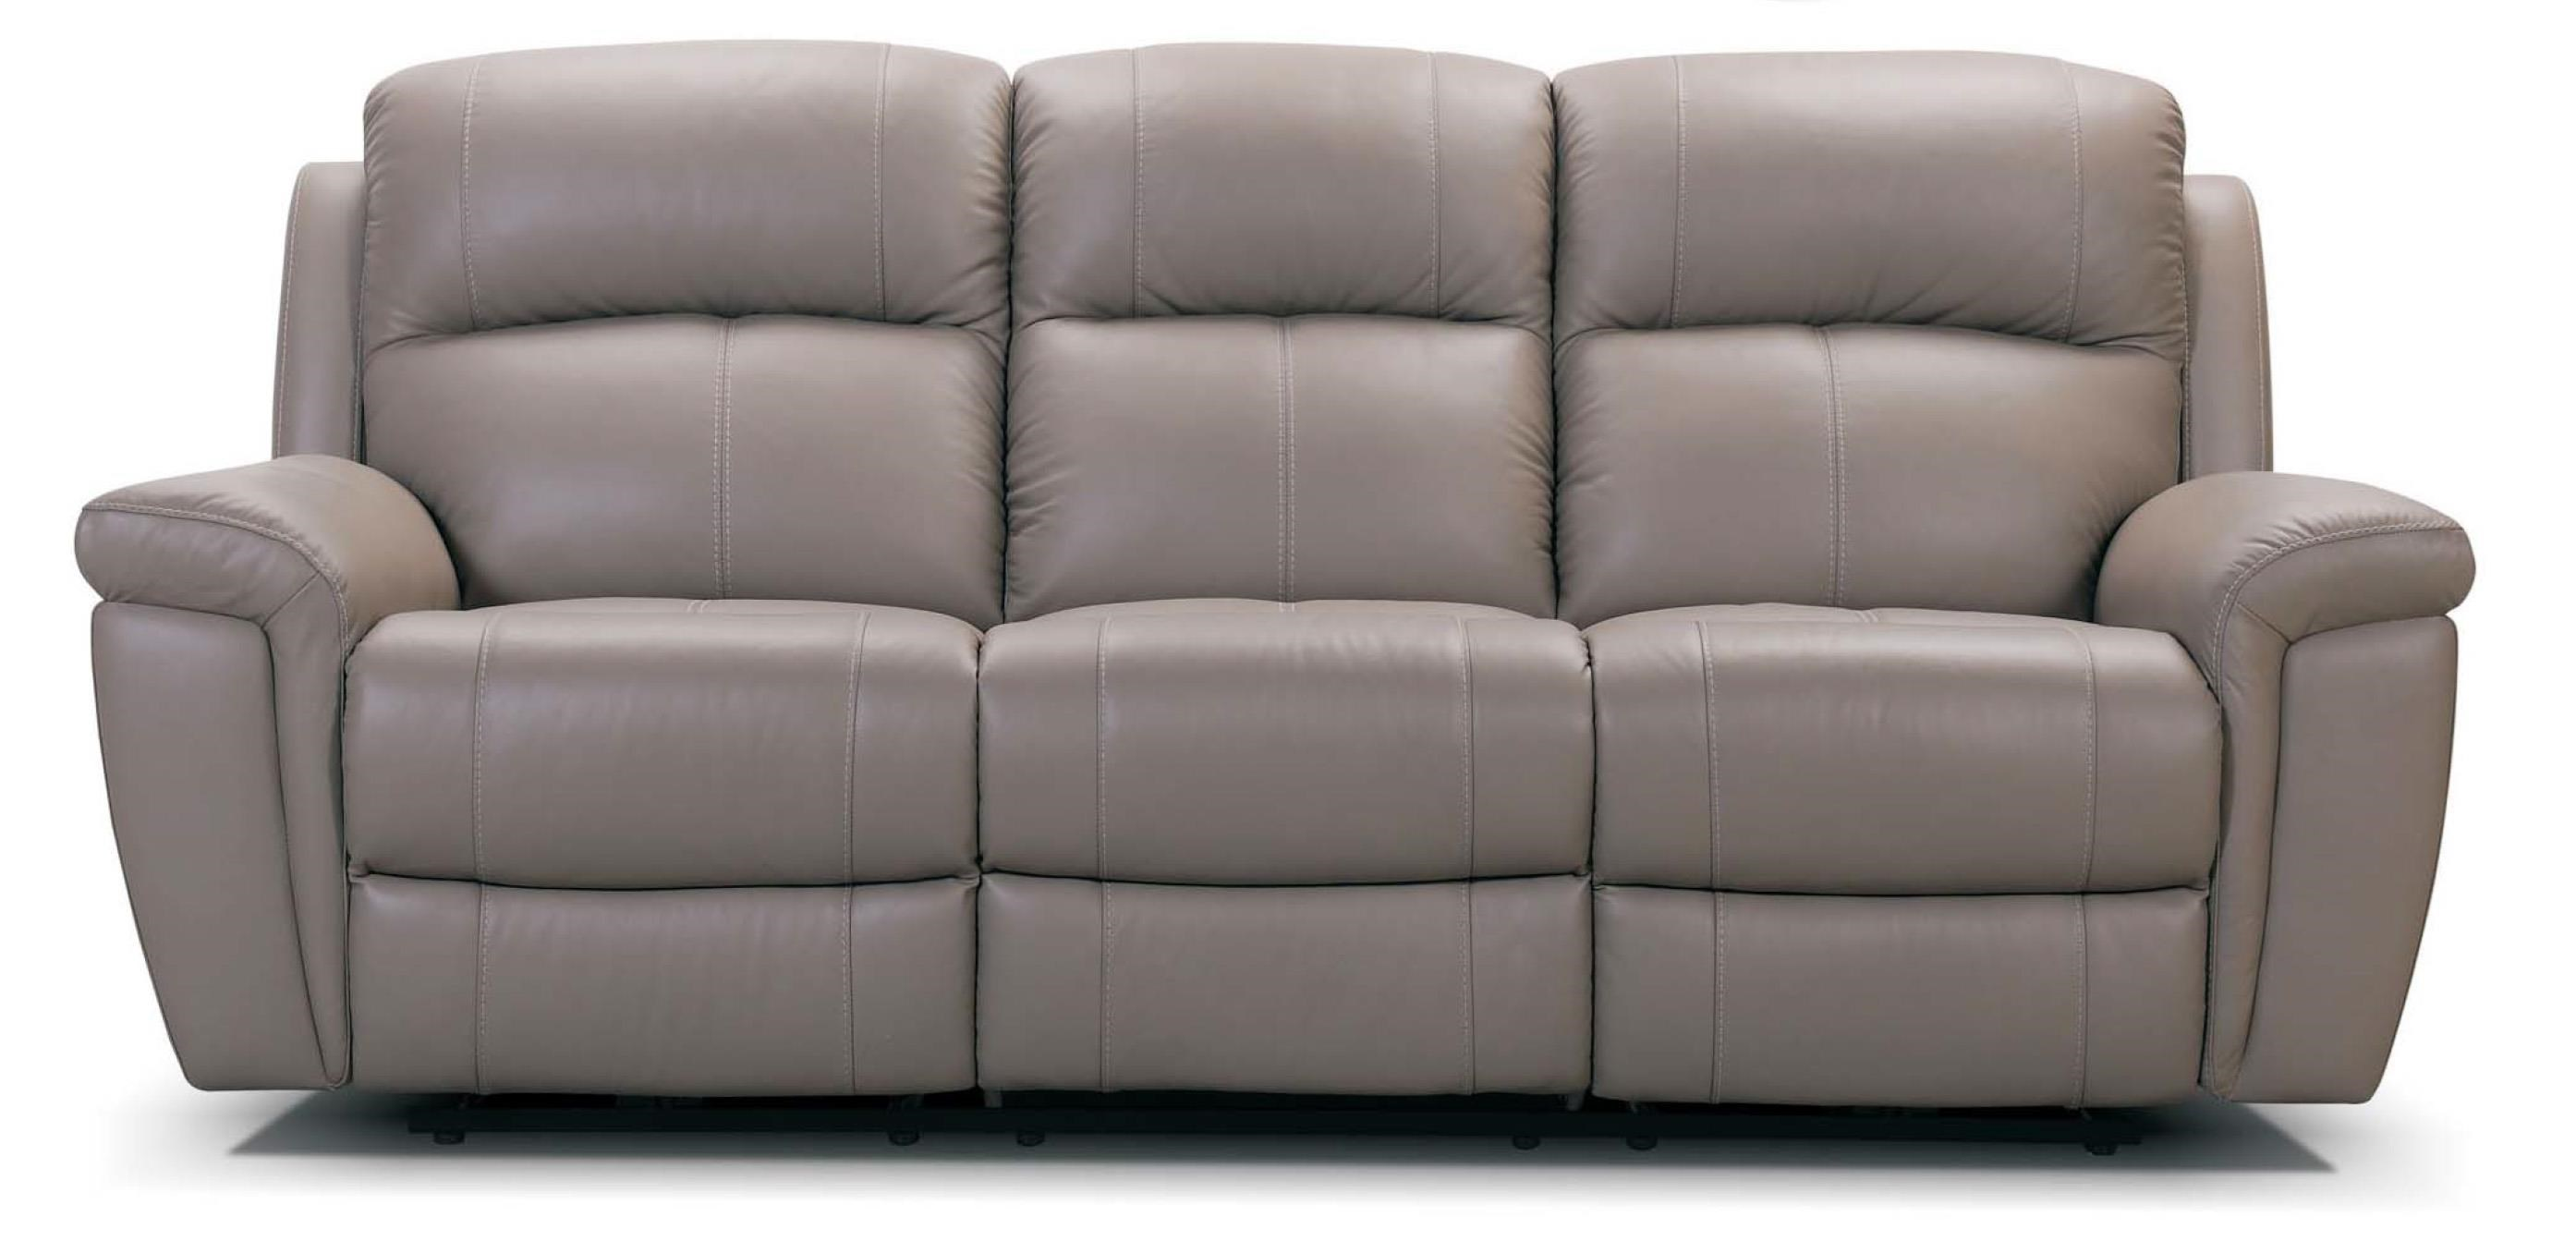 Violino Dunk & Bright Furniture Reclining Sofa